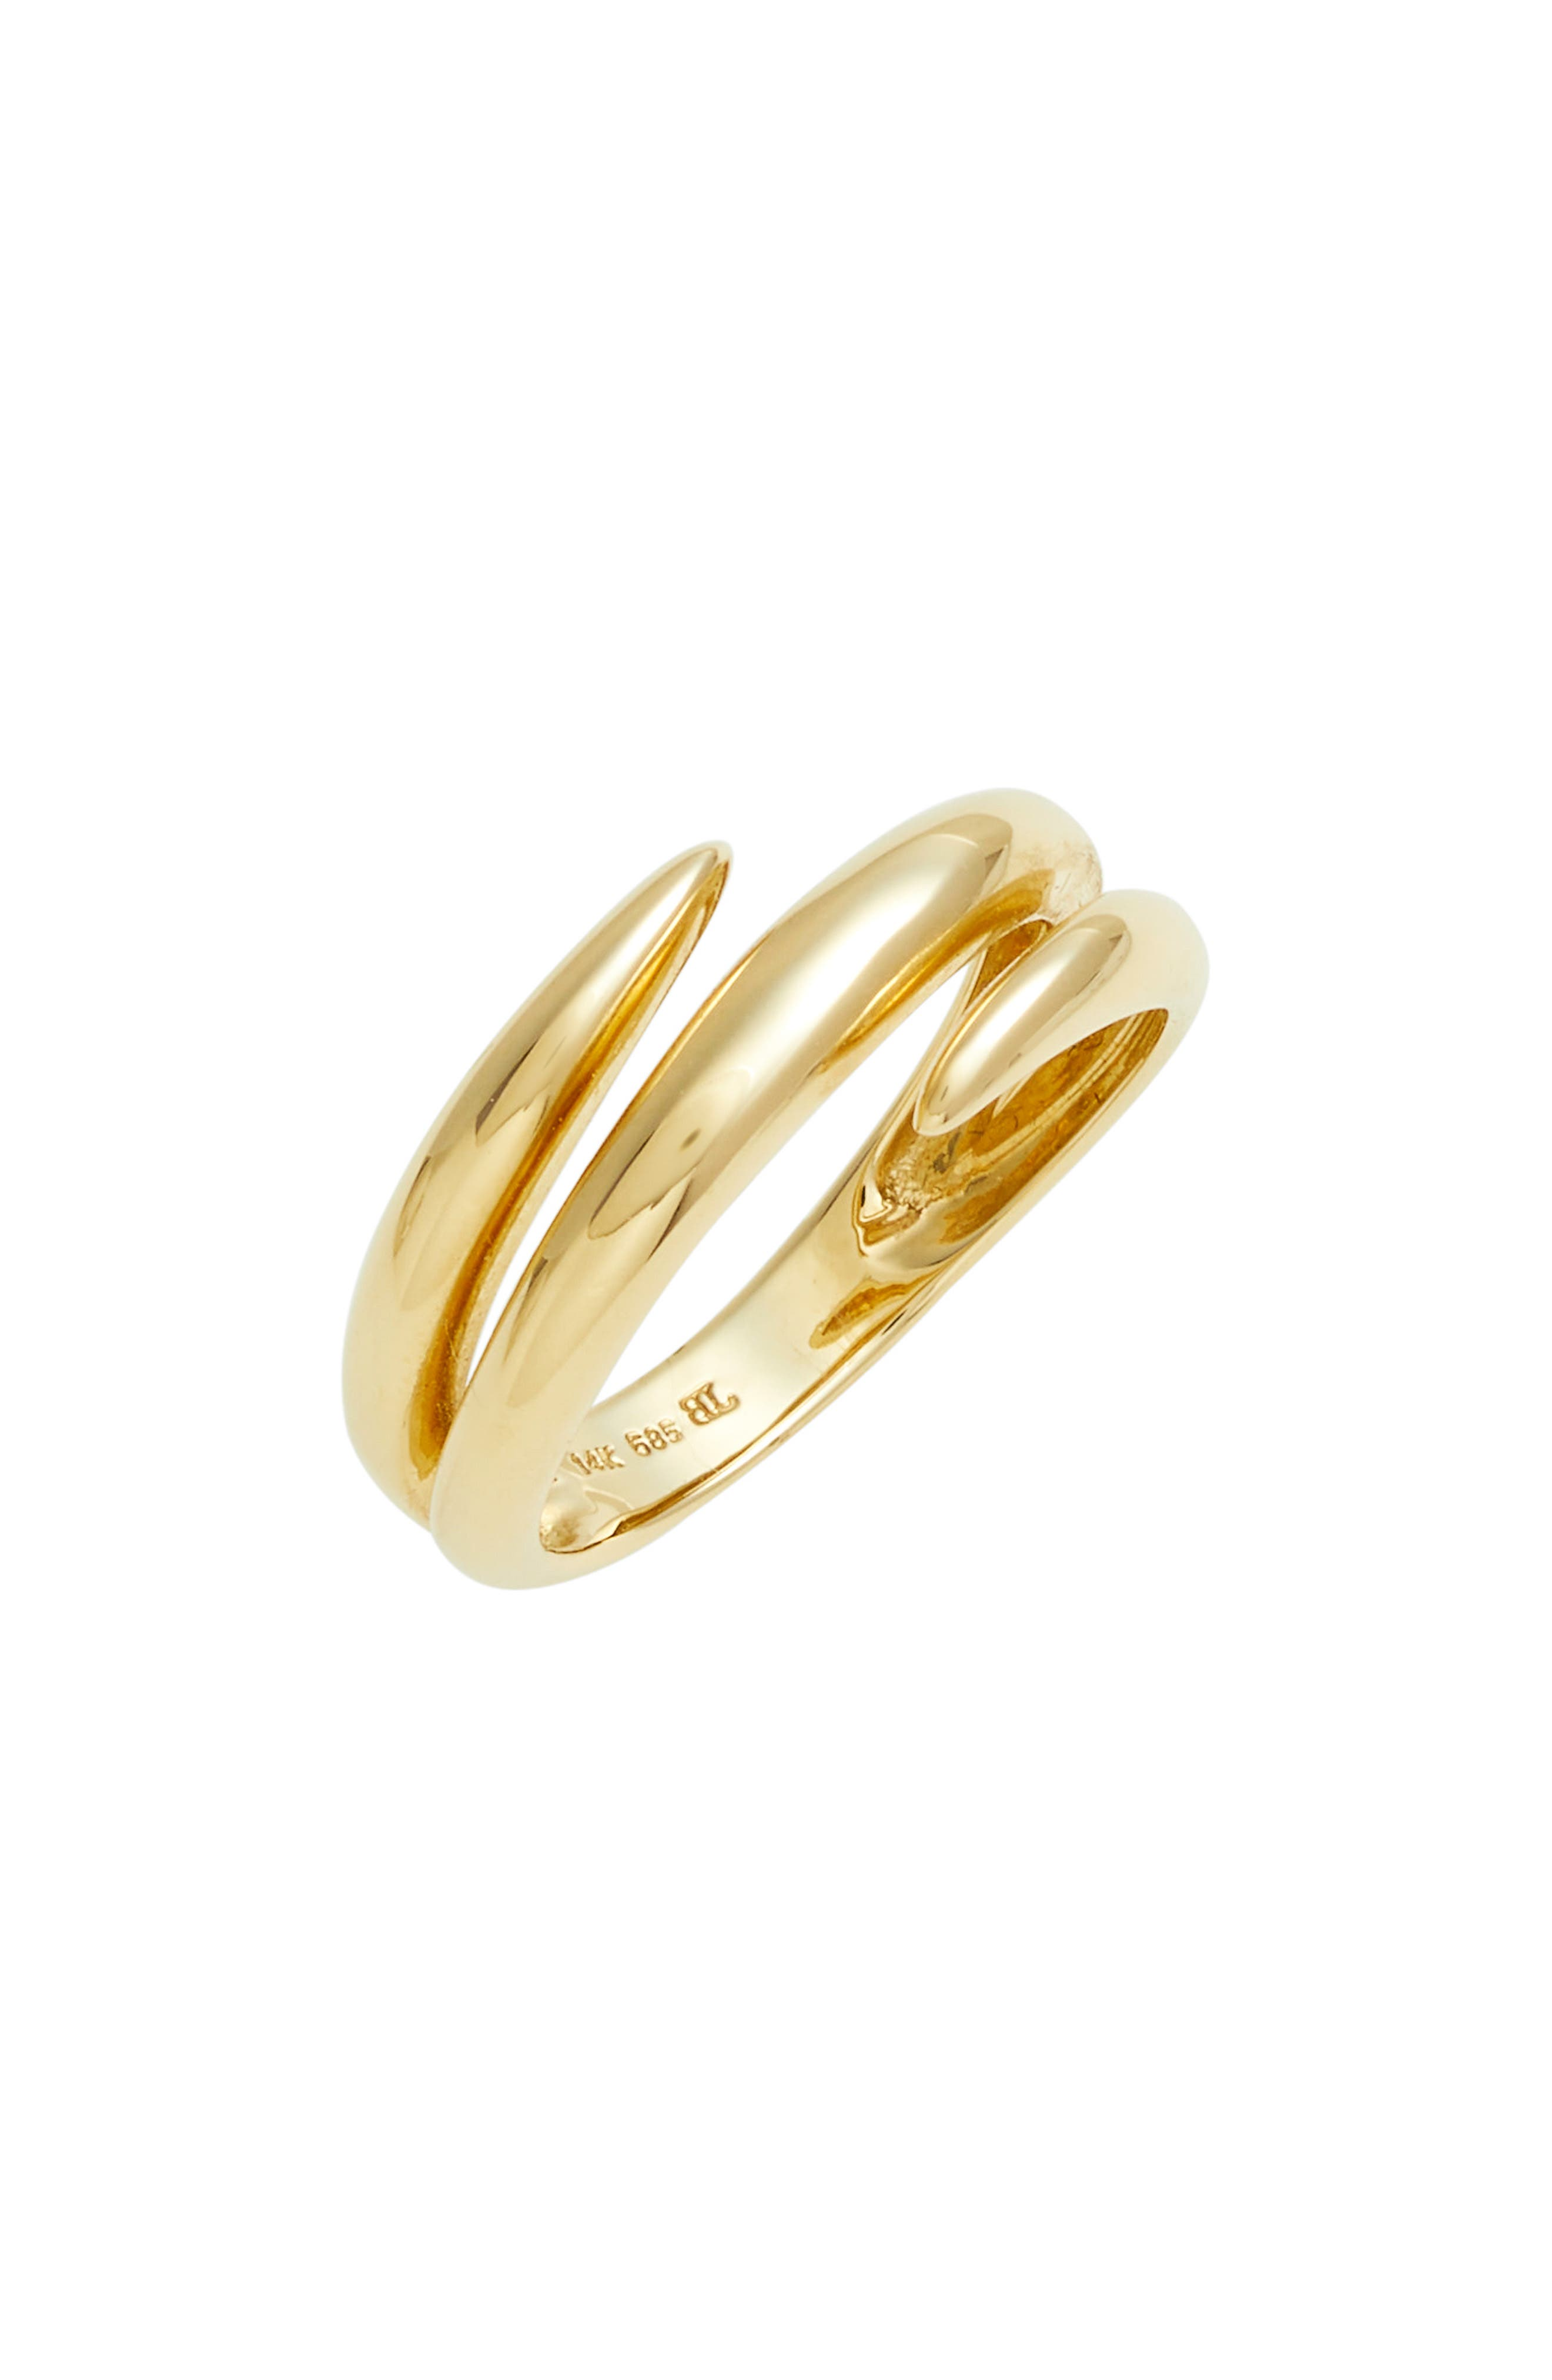 Ofira 14K Gold Coil Wrap Ring,                         Main,                         color, YELLOW GOLD